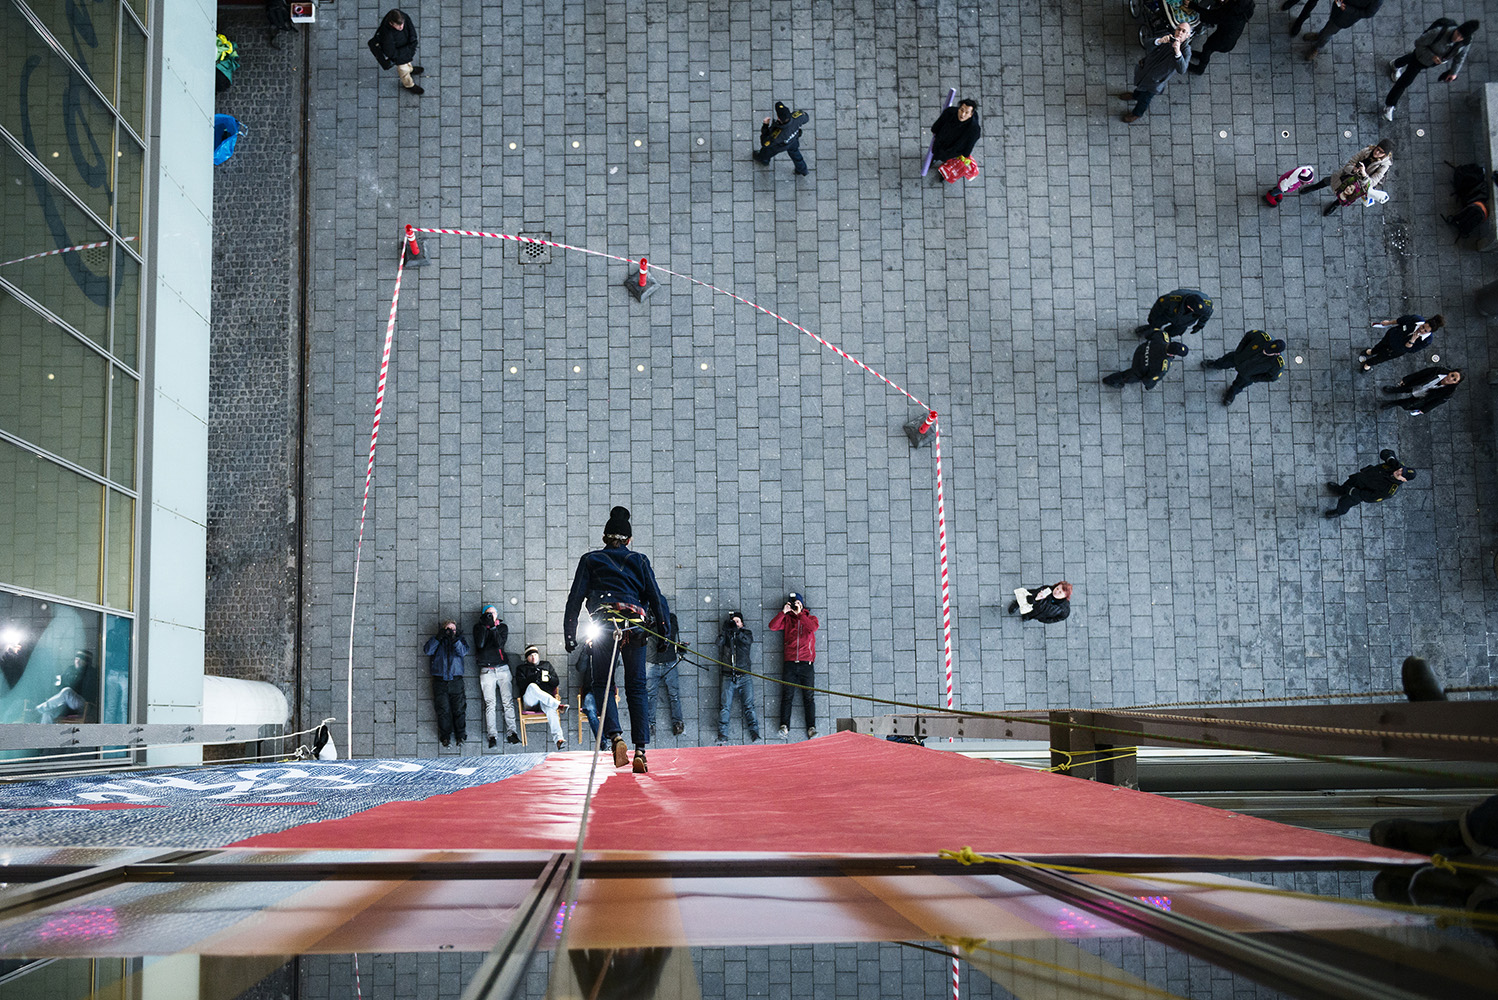 Activists stage a 'vertical catwalk' action in front of the Levi's store in the biggest mall in Copenhagen, Denmark. They call Levi's to engage fully in the process of ending the use and release of hazardous chemicals in connection with the production of their clothing.